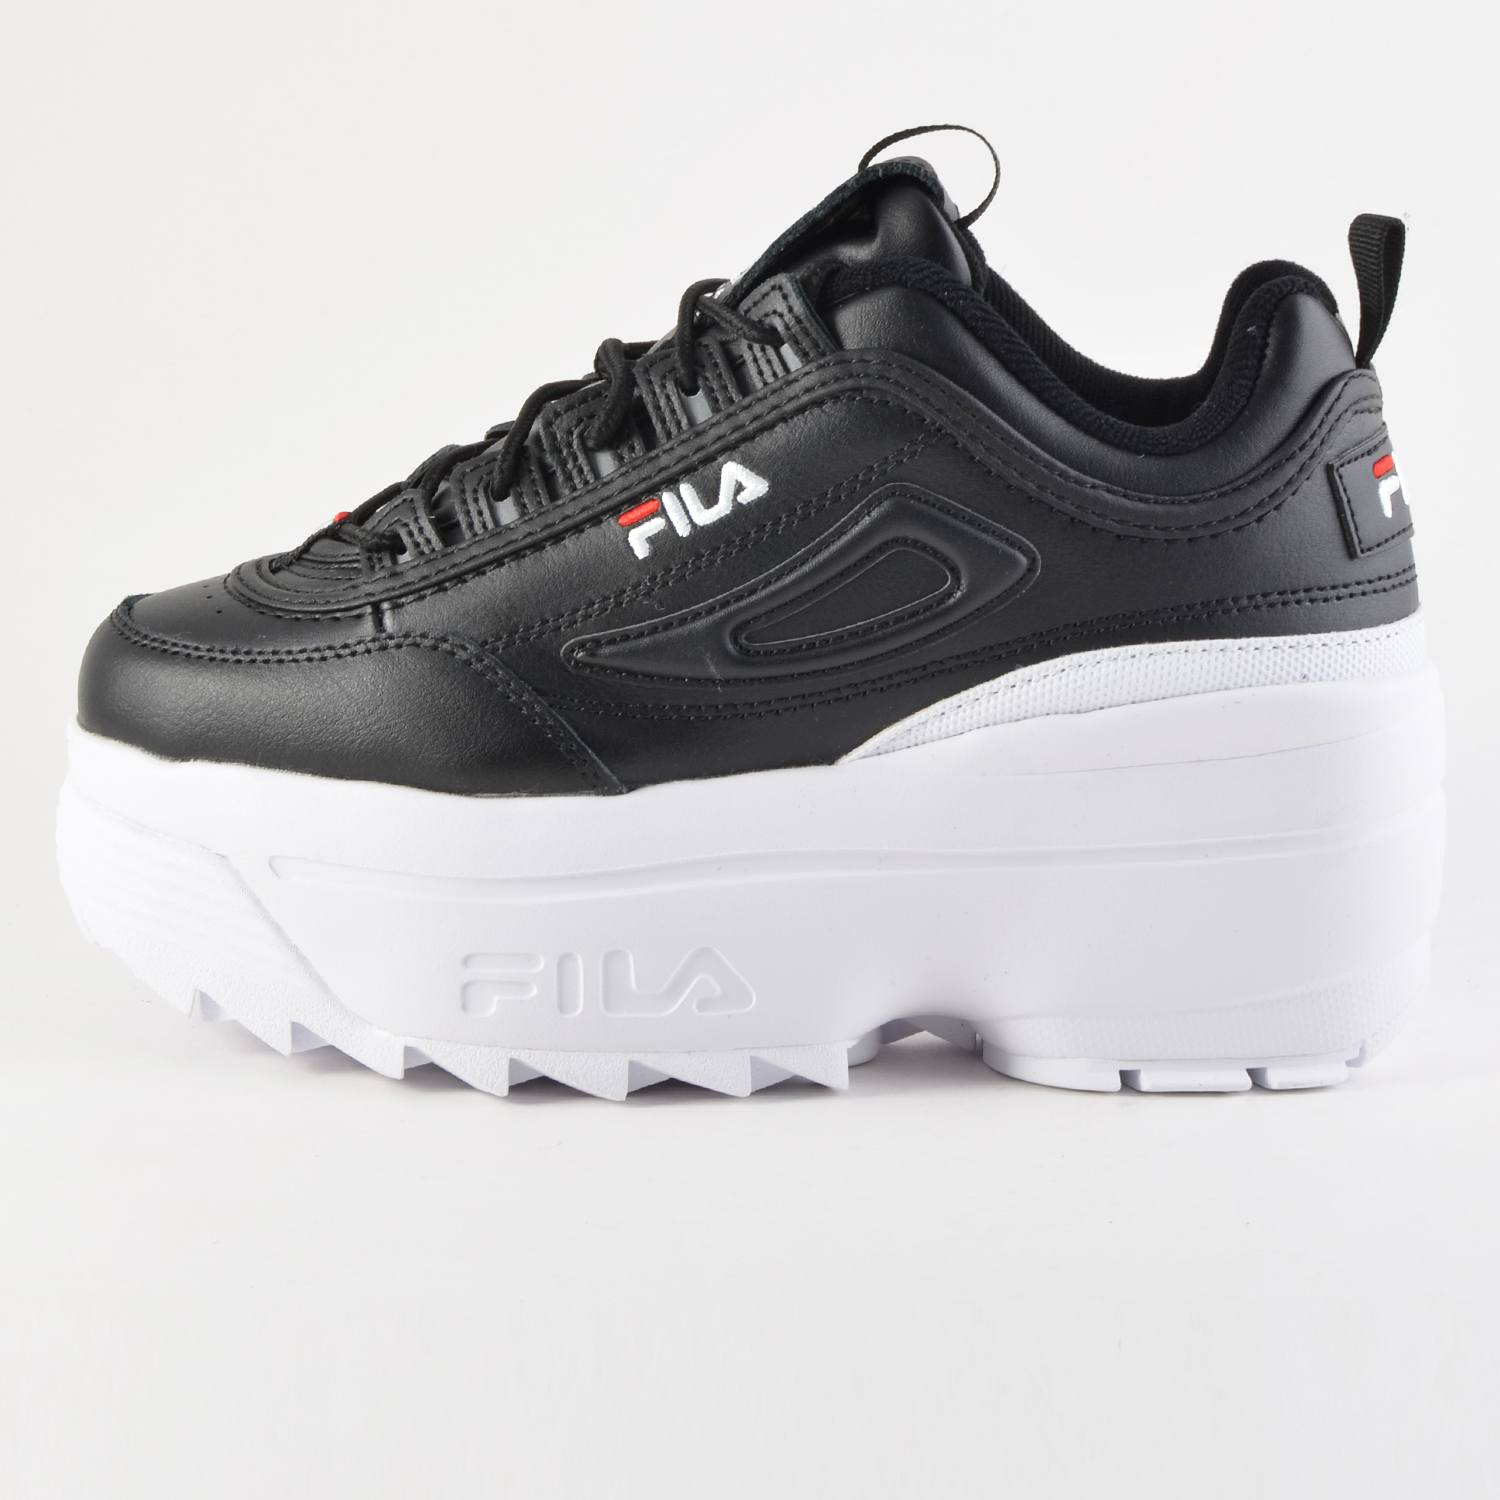 Fila Heritage Fila Disruptor 2 Wedge Iridescent Women's